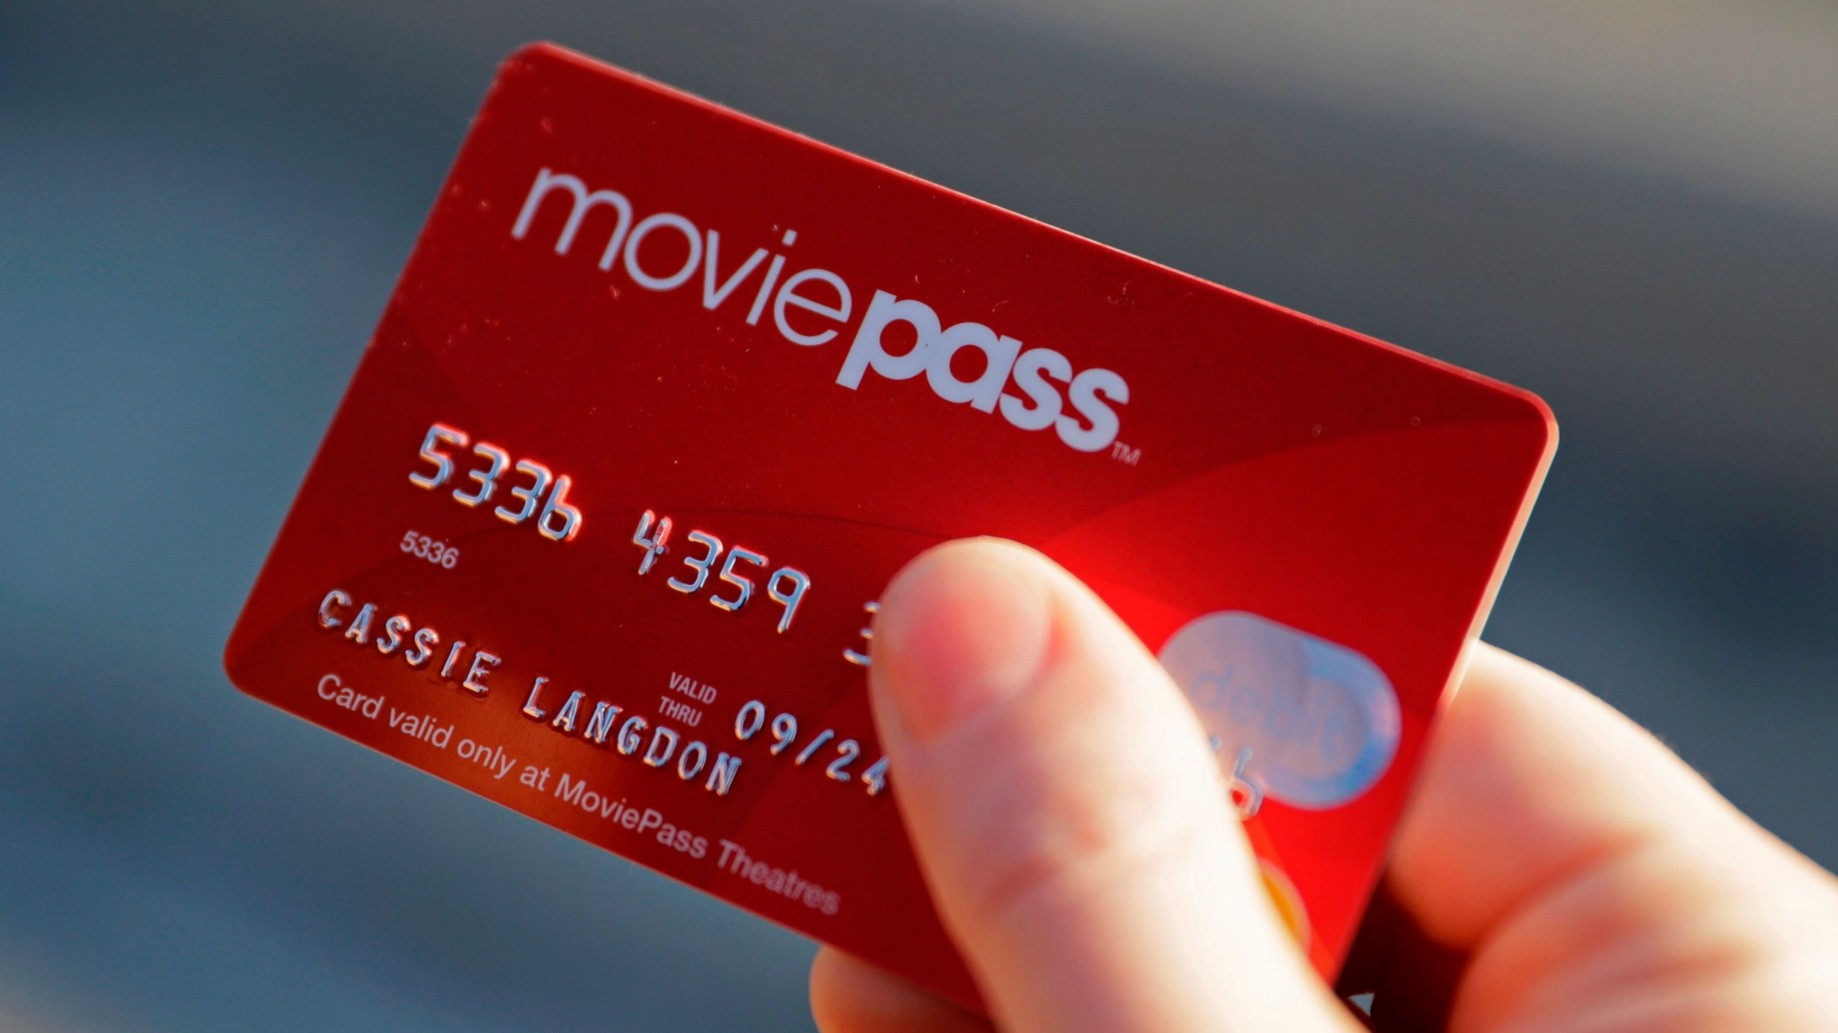 be6b1ecfe How MoviePass Can Become Profitable Now - Forbes Wilson - Medium